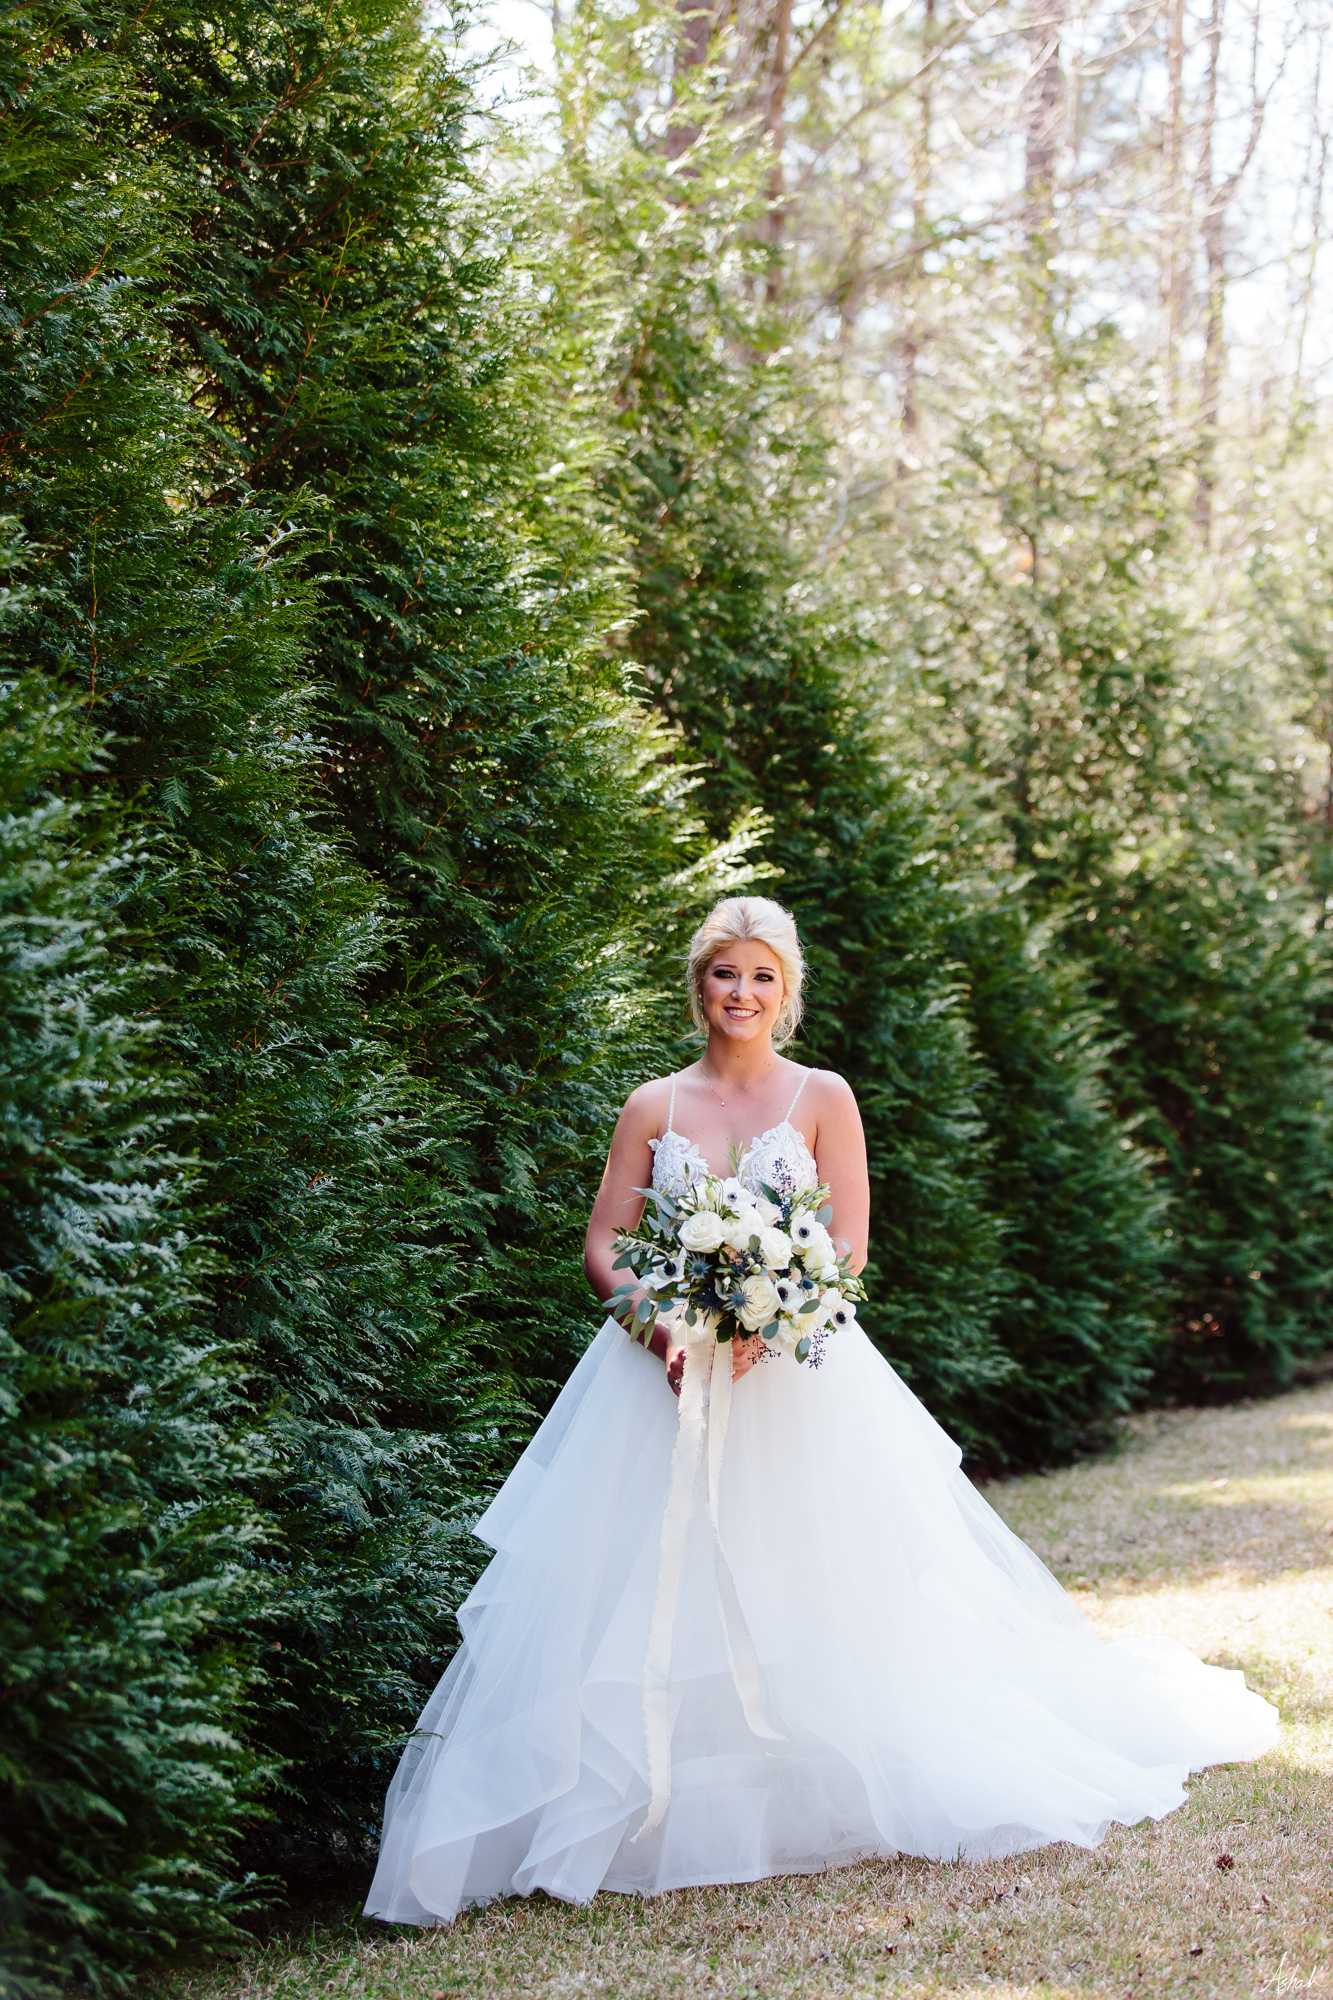 savannah weddings, savannah brides, two piece wedding dresses, southern weddings, outdoor receptions, personalized weddings2.jpg